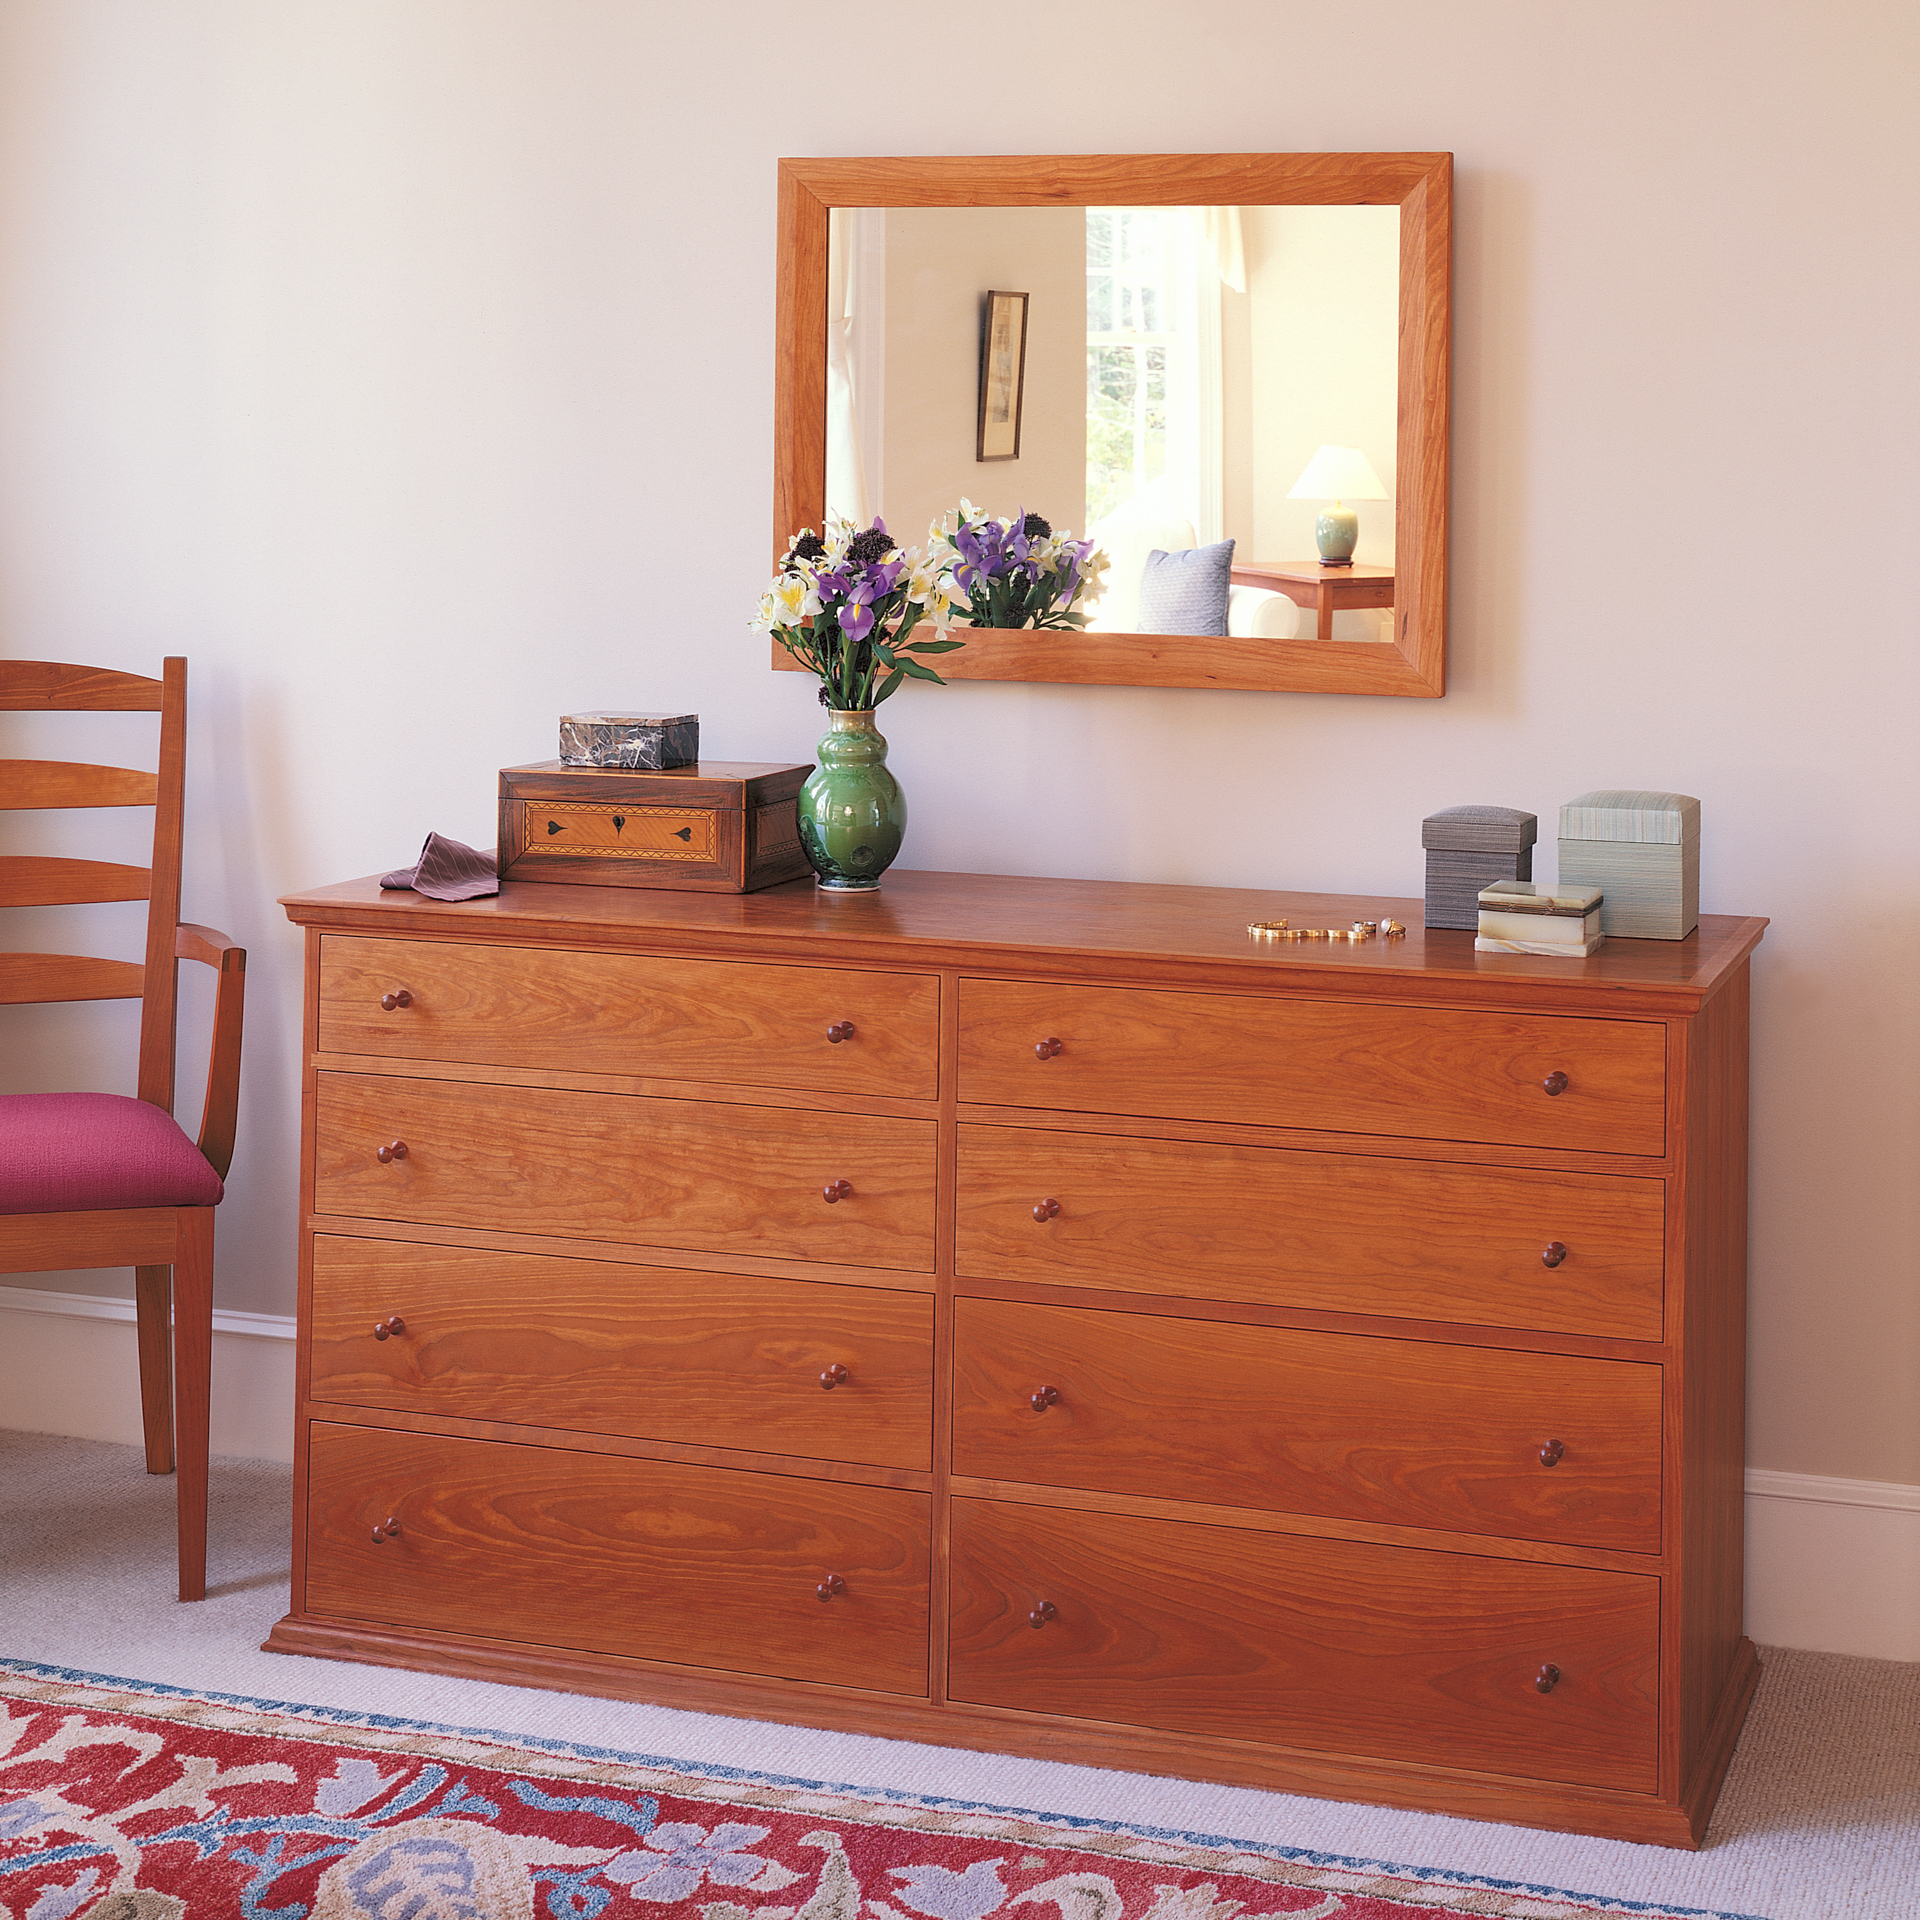 Cases & Dressers - Thos. Moser